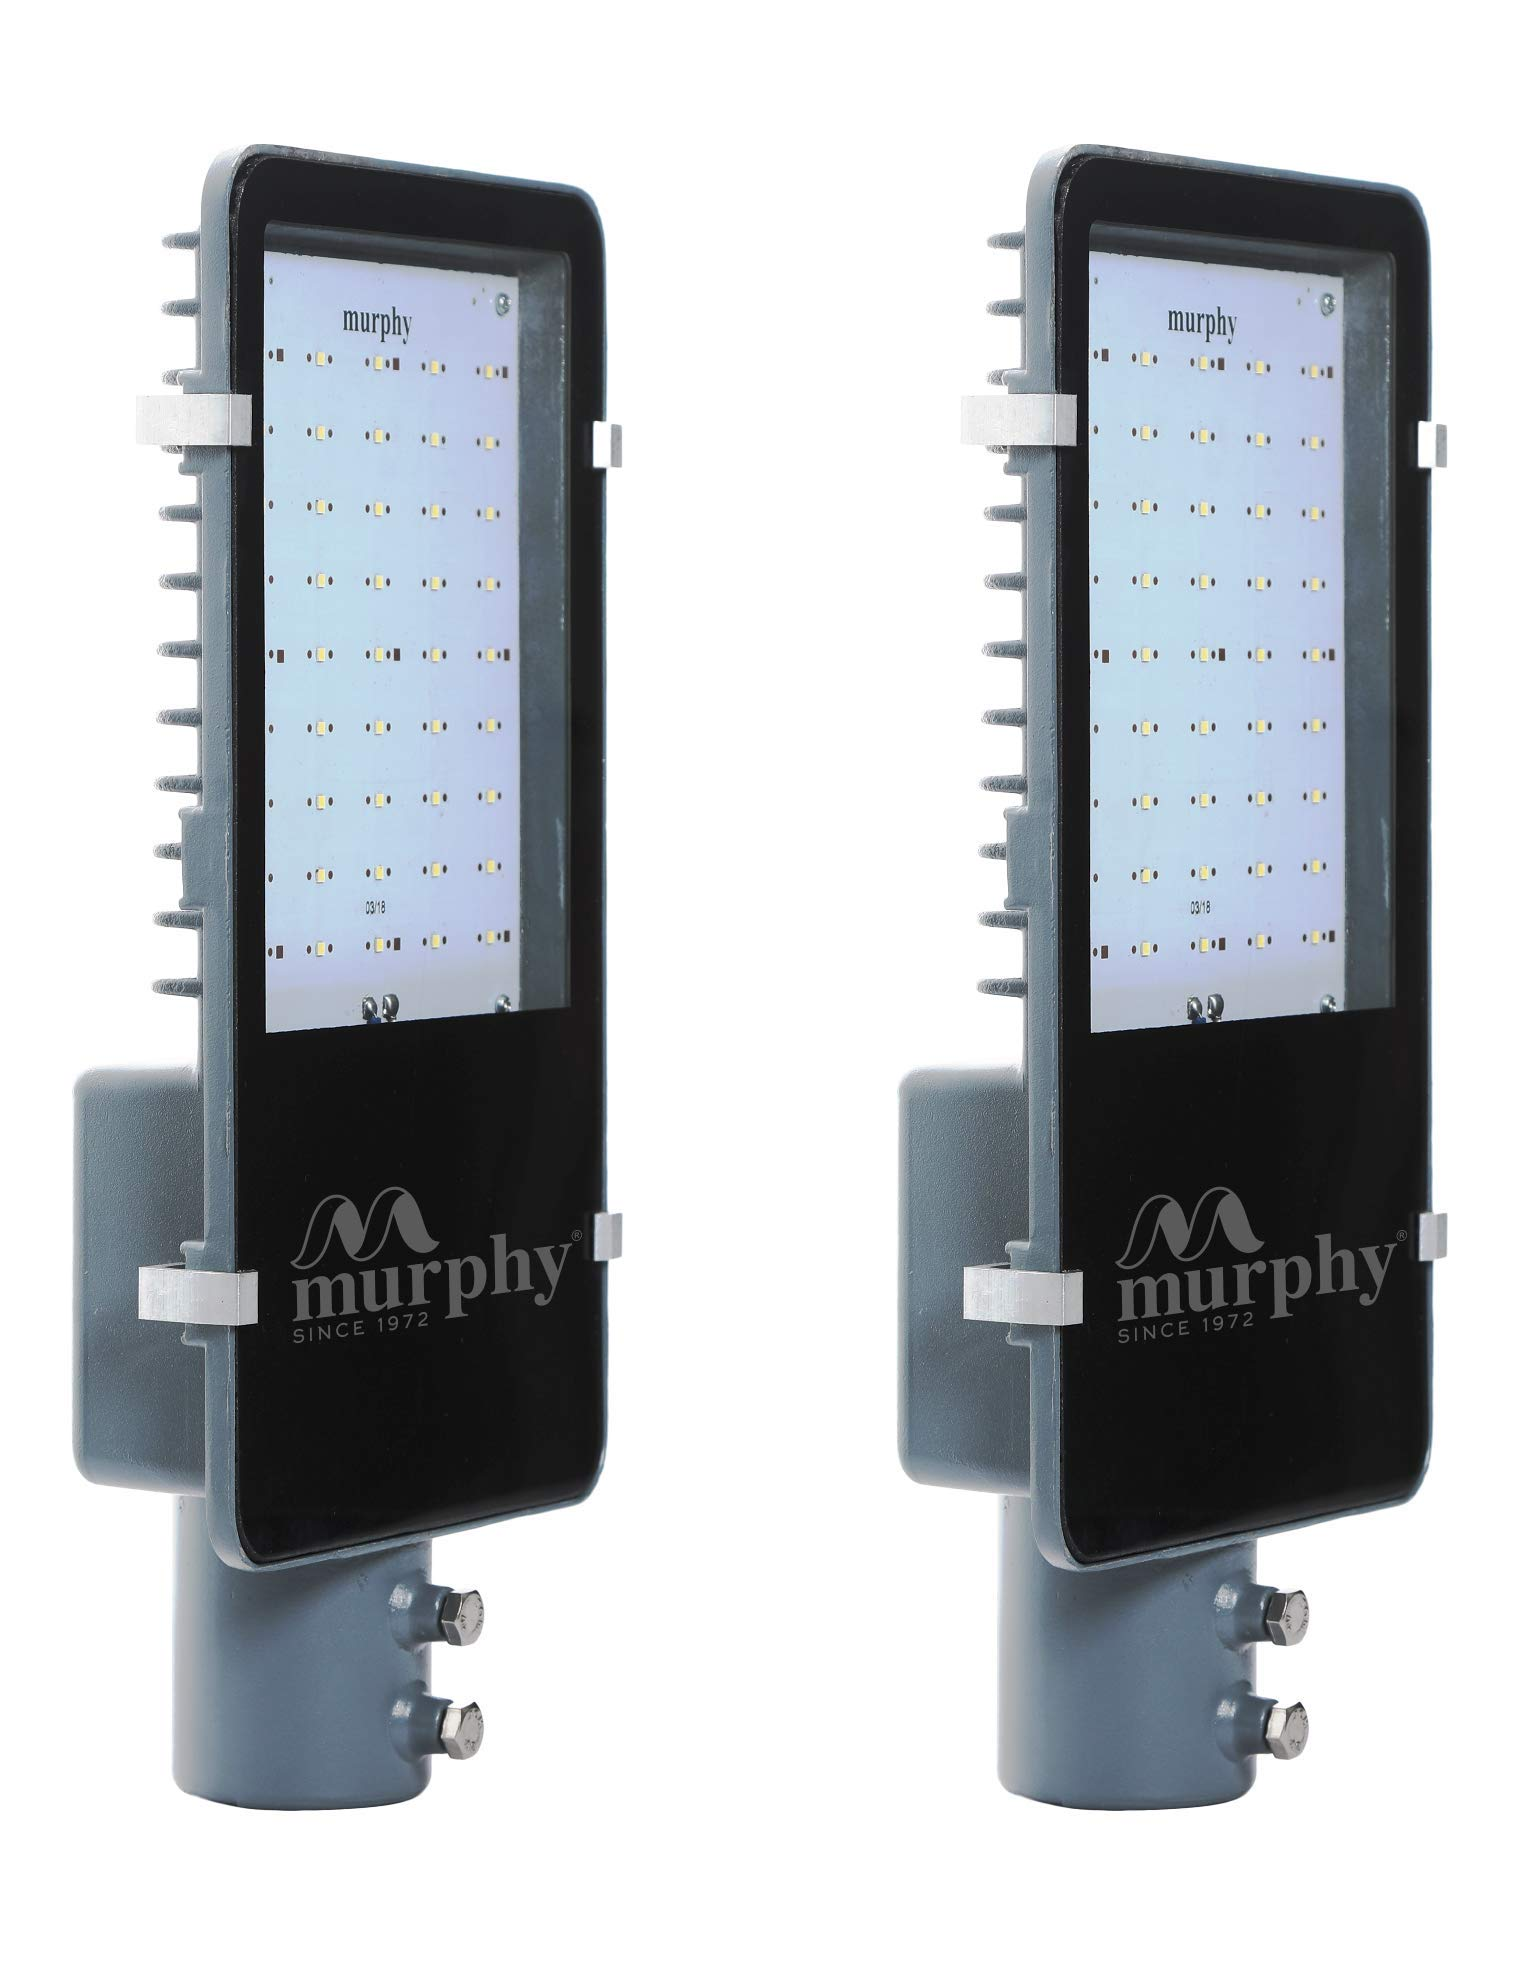 Murphy LED 48W Street Ligth, IP-65 Outdoor Light (Cool White, Pack of 2) BIS Approved Driver ... (B07L2SXBC9) Amazon Price History, Amazon Price Tracker